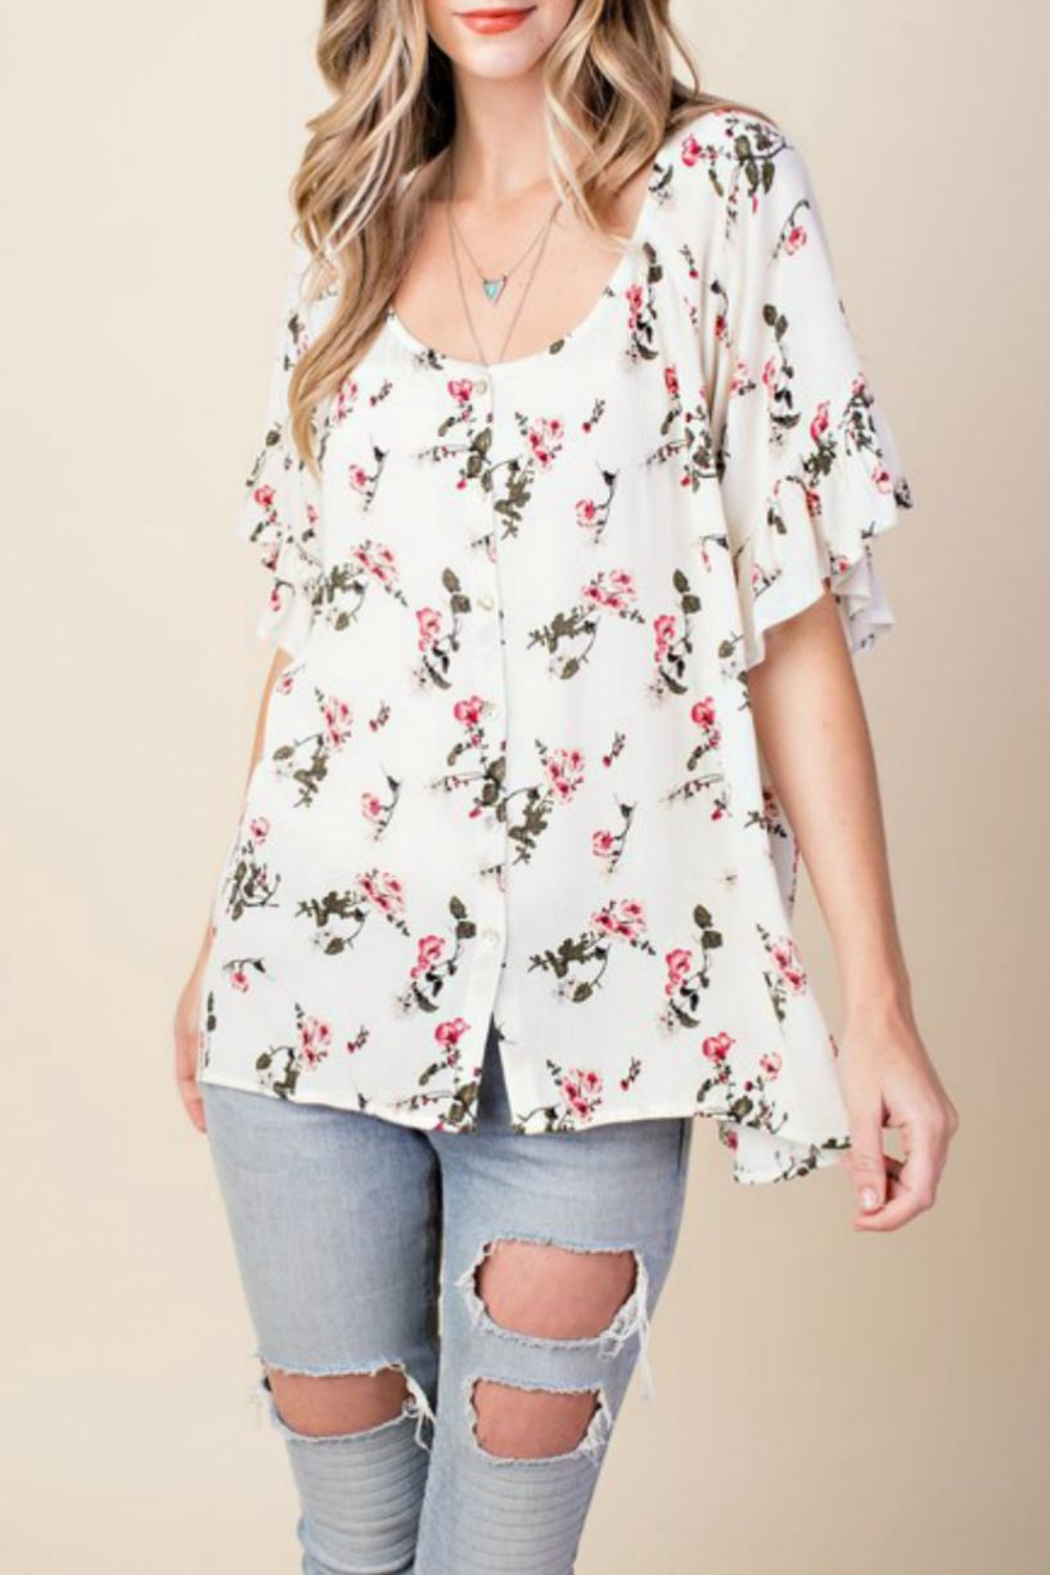 KORI AMERICA Floral Button-Down Top - Main Image